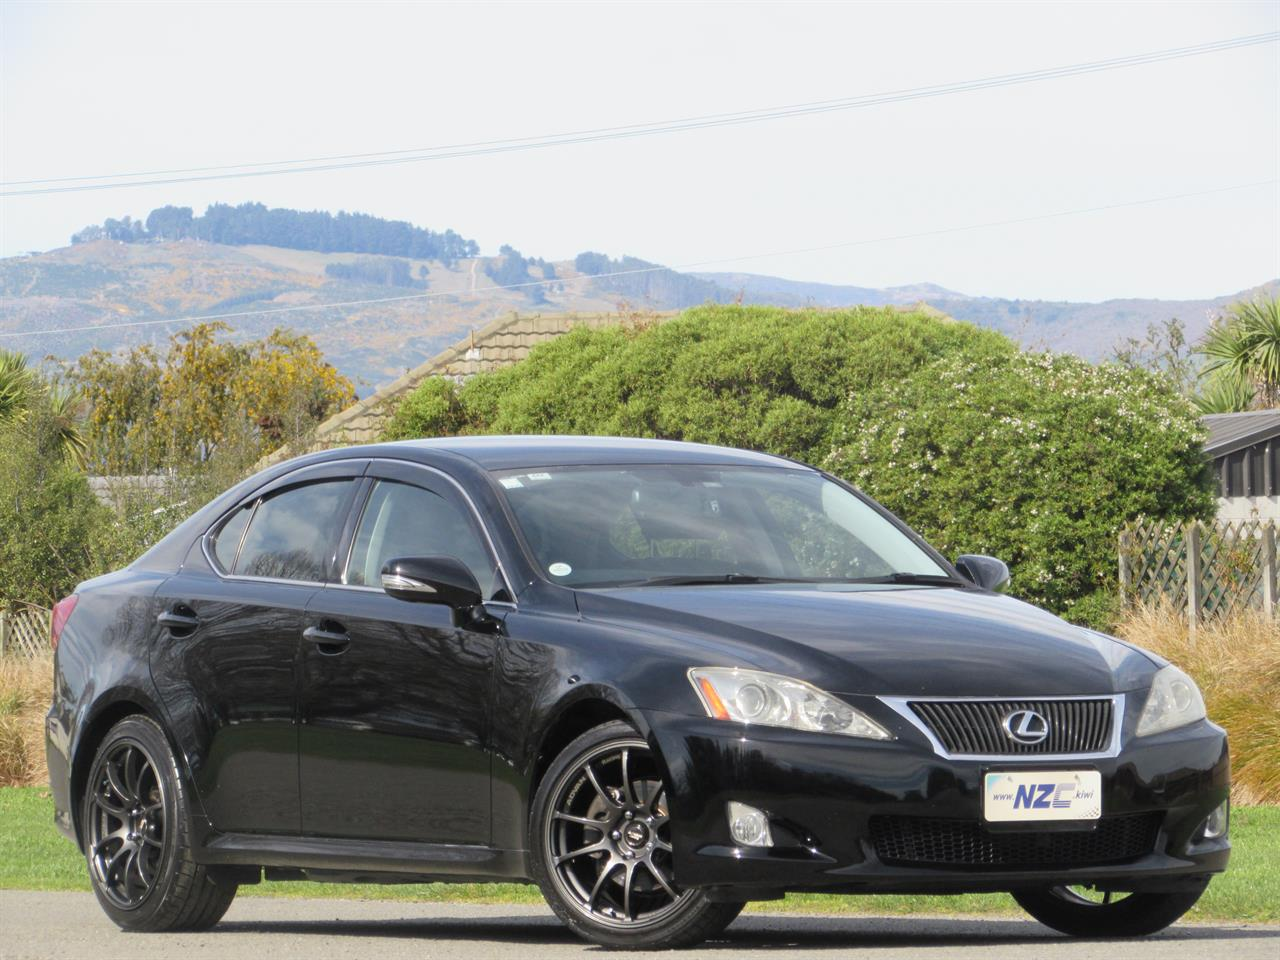 2008 Lexus IS 250 only $59 weekly